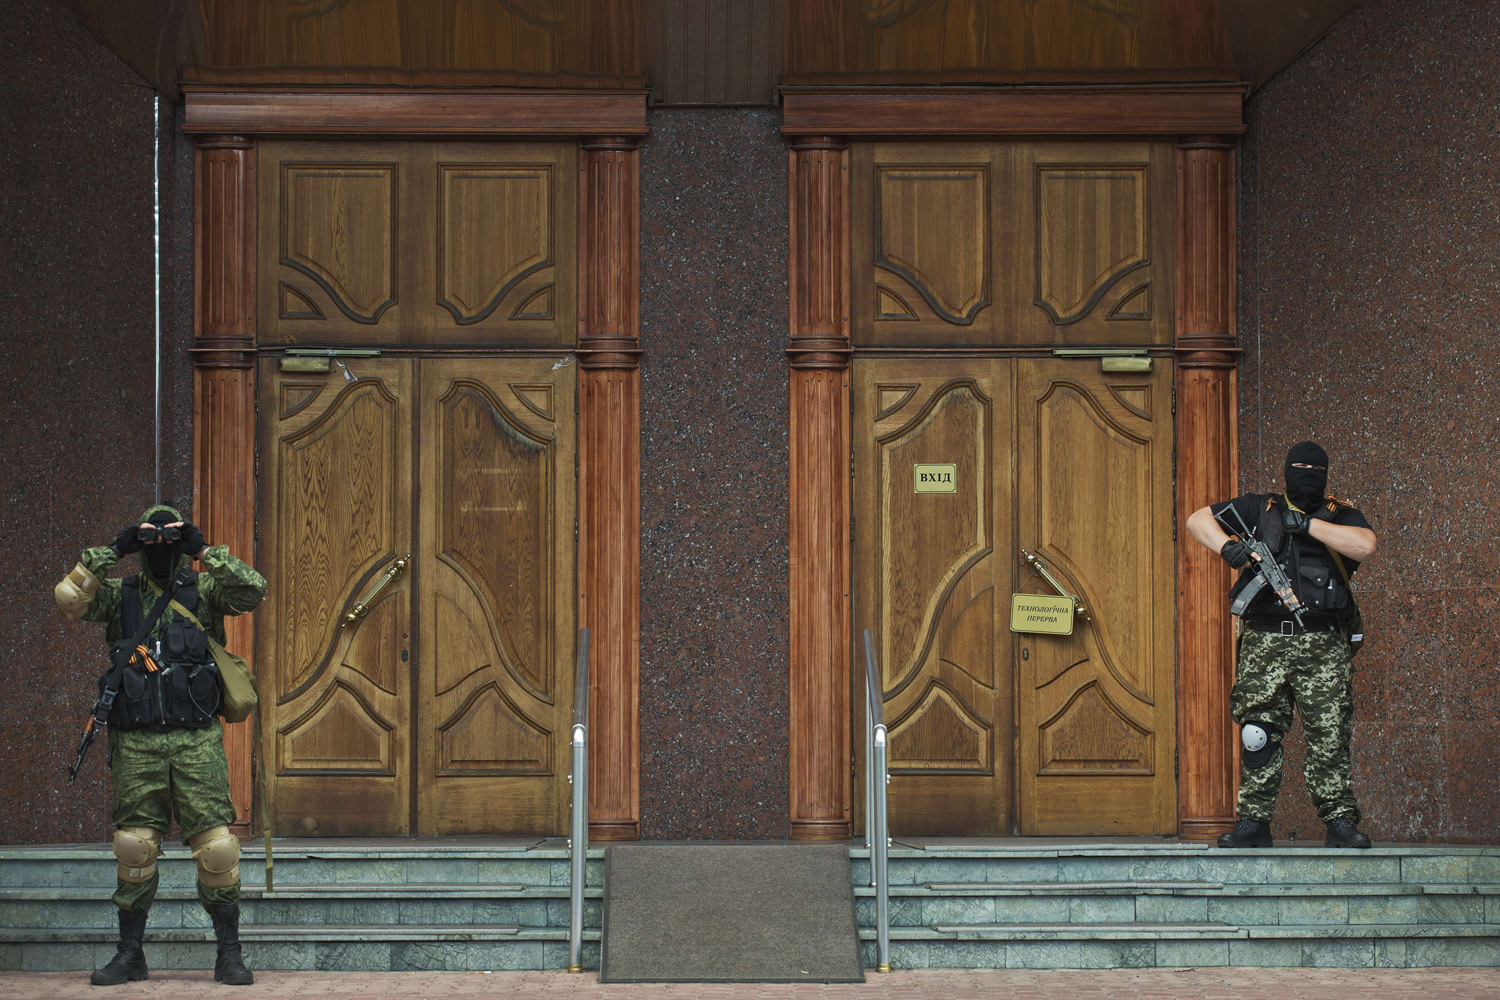 Jun. 16, 2014. Pro-Russian rebels stand guard outside a local branch of the National Bank of Ukraine after seizing the building in Donetsk, eastern Ukraine.